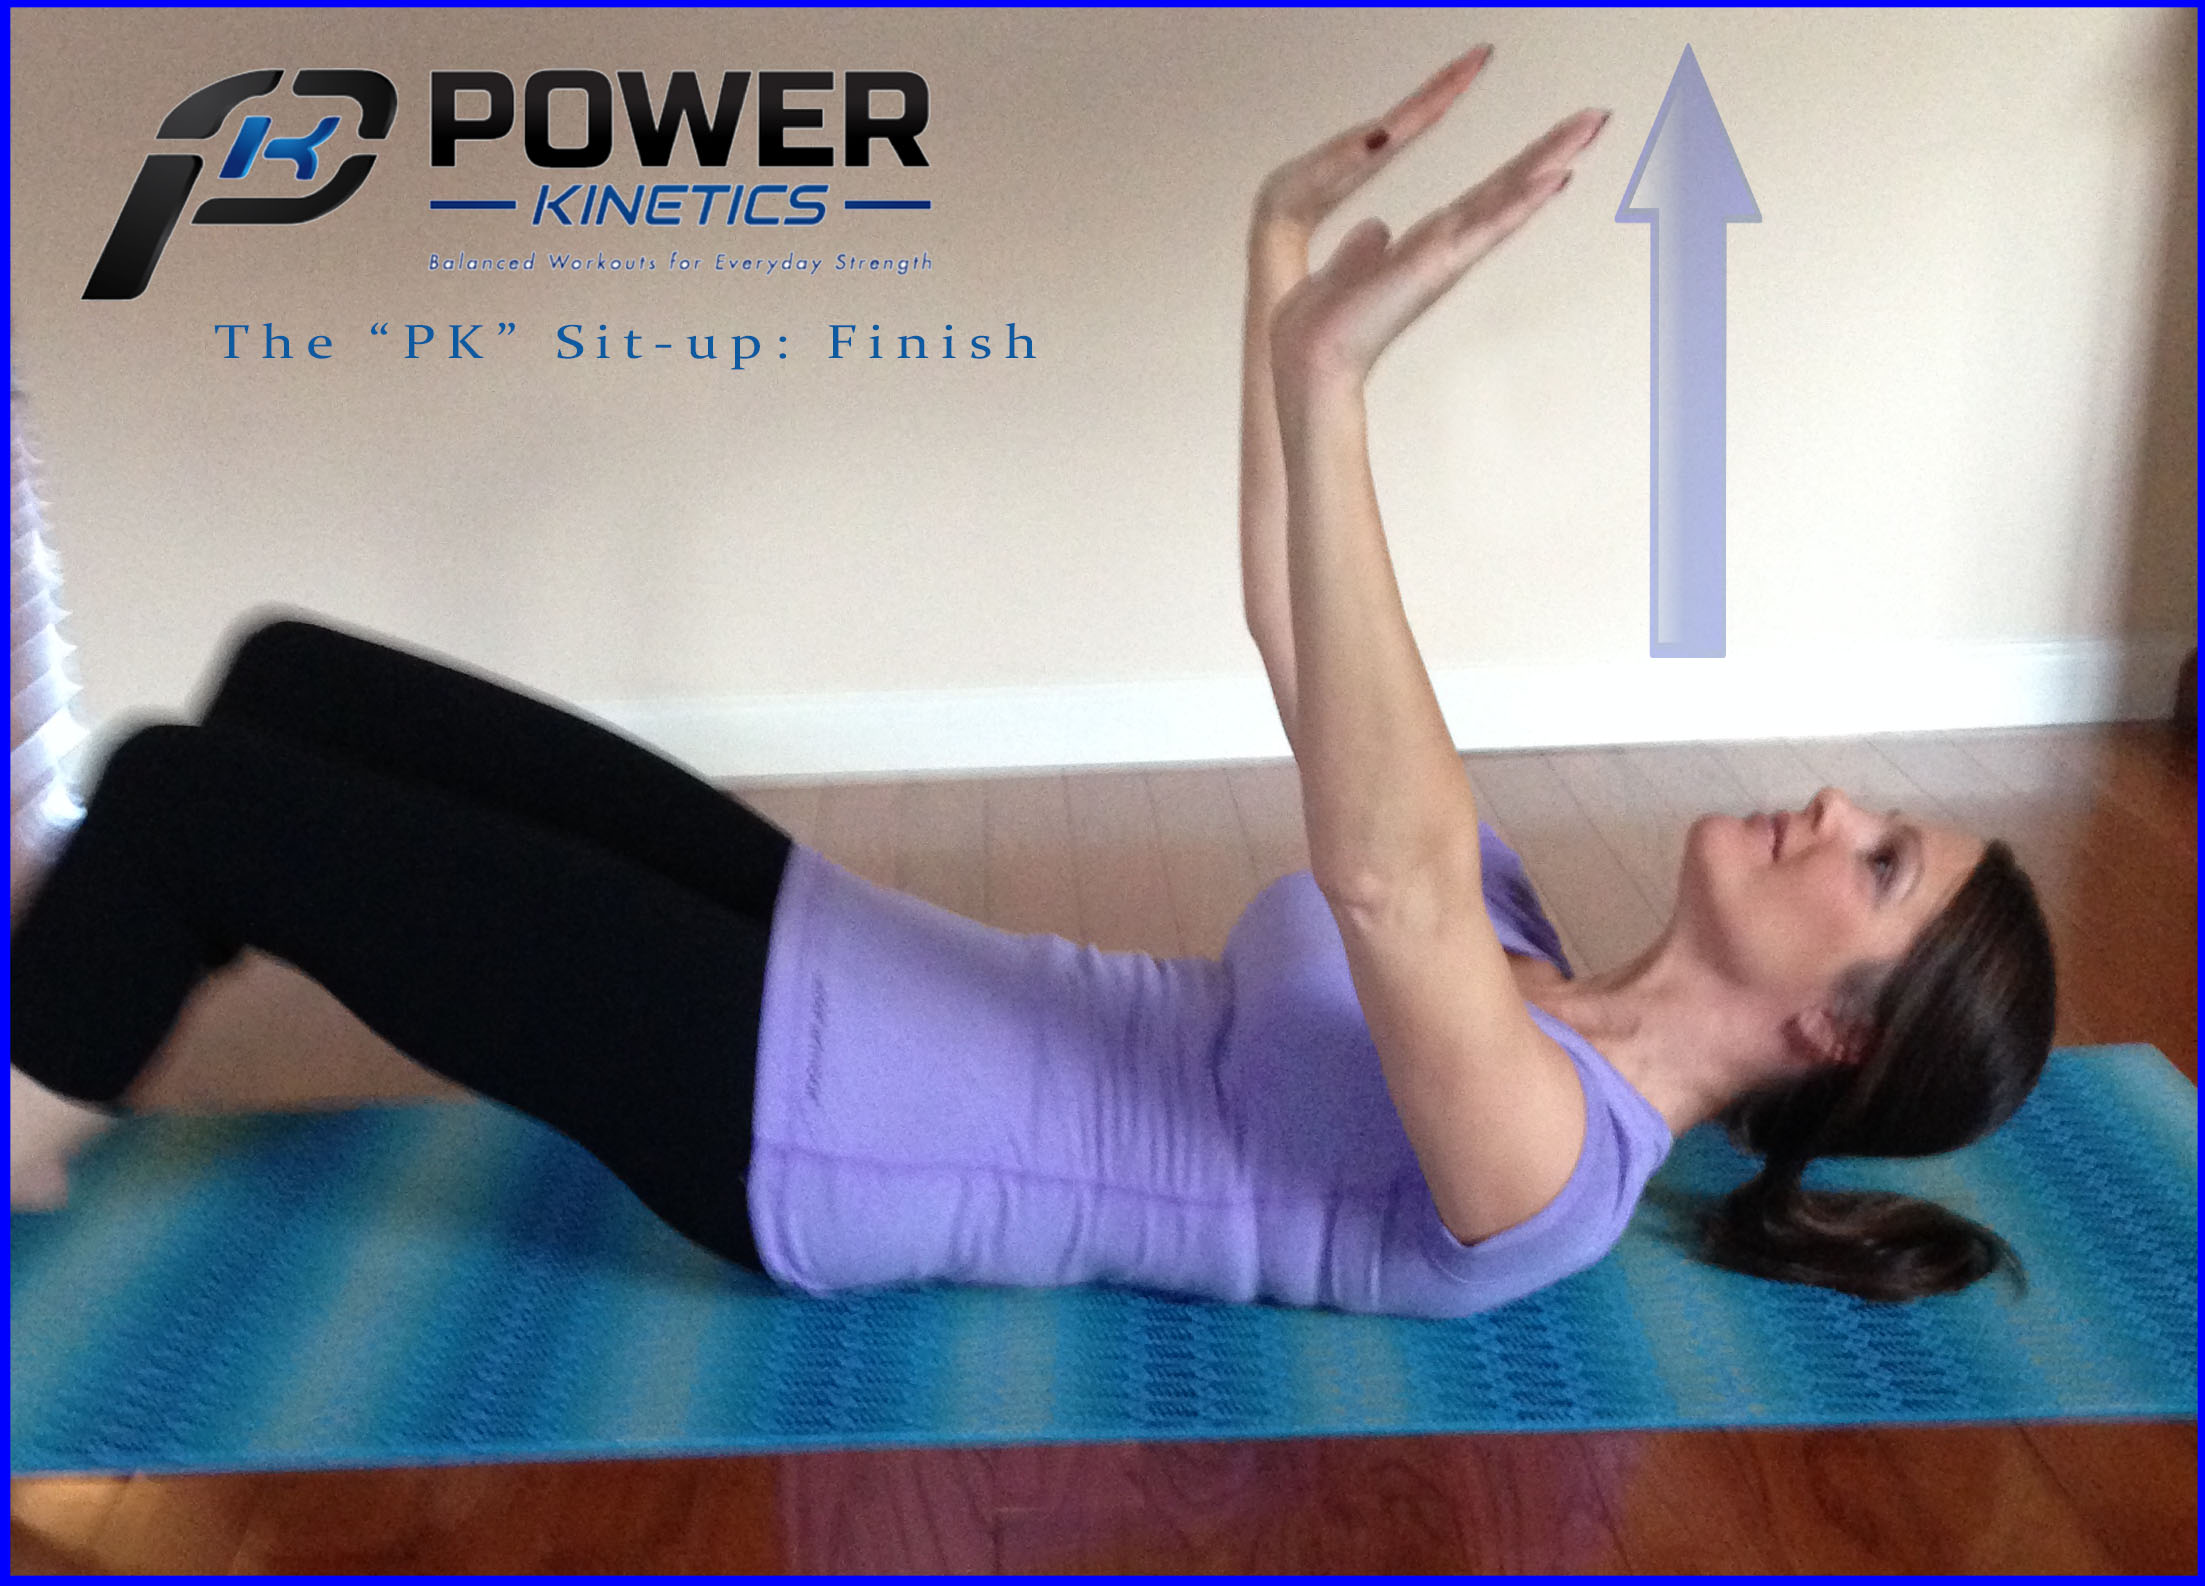 The Power Kinetics abdominal exercise. Step 1—Part 2